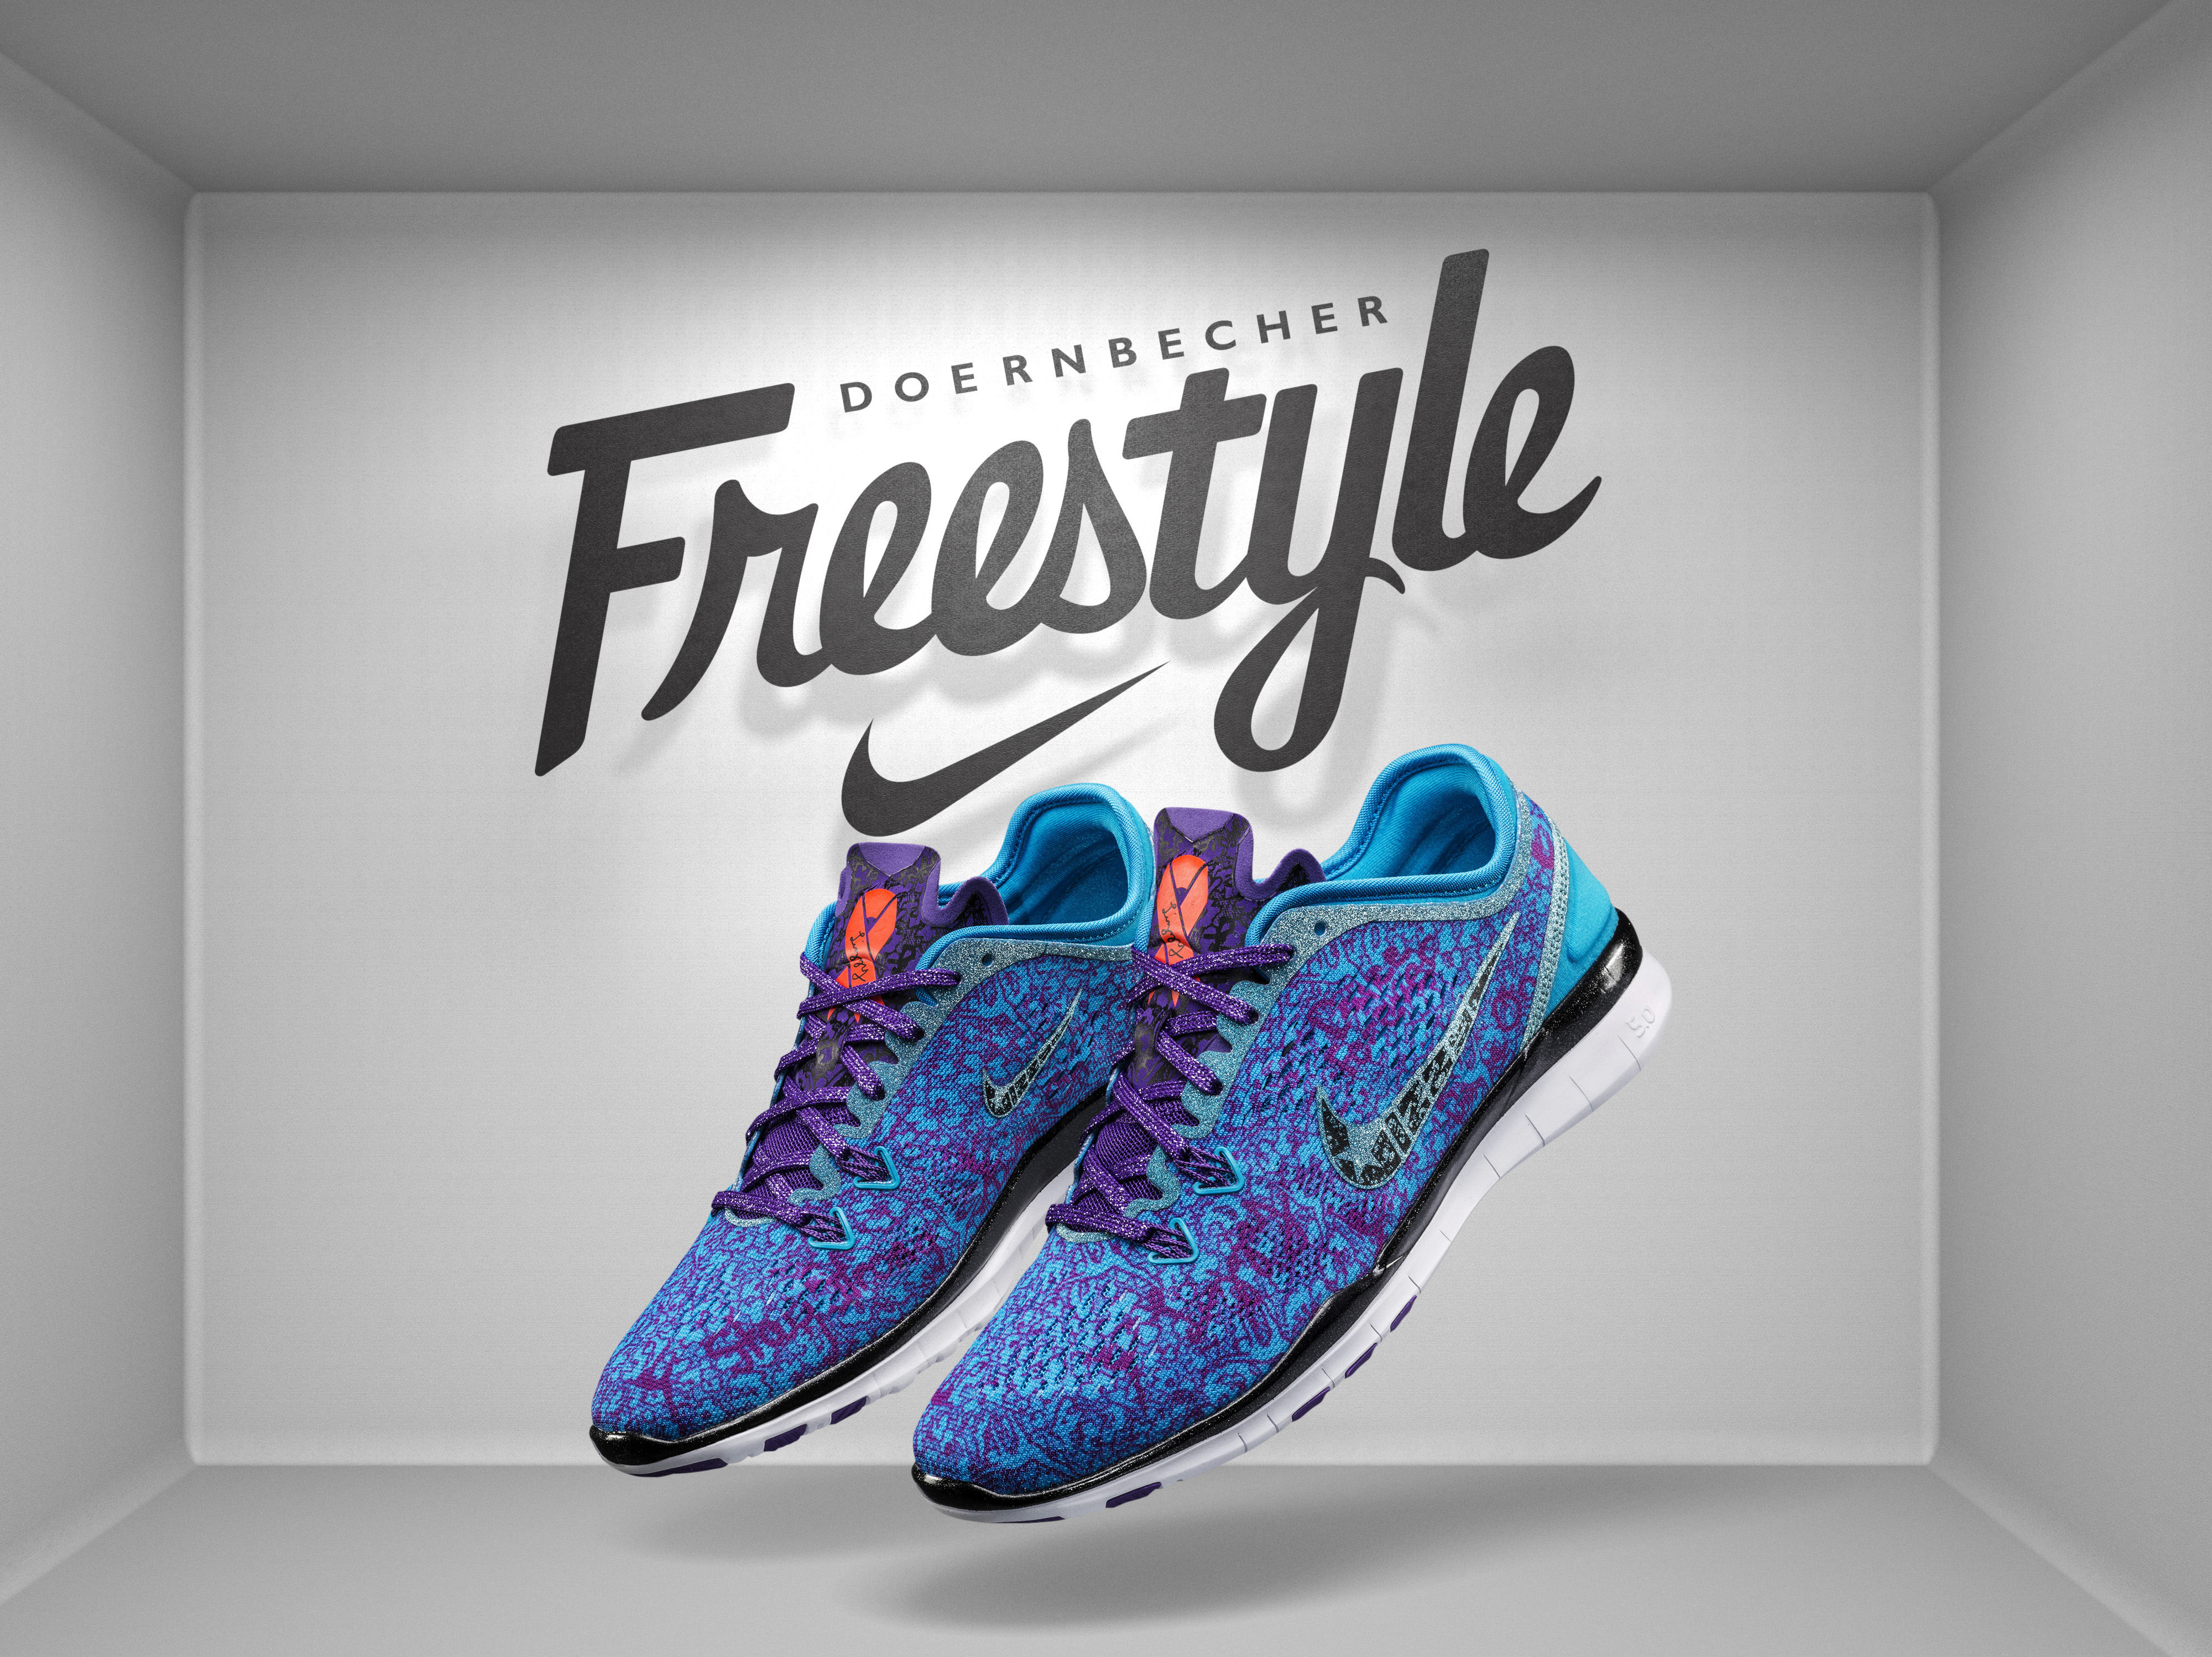 3f284b8cf29253 Nike 2015 Doernbecher Freestyle Collection - Official Images - Air ...